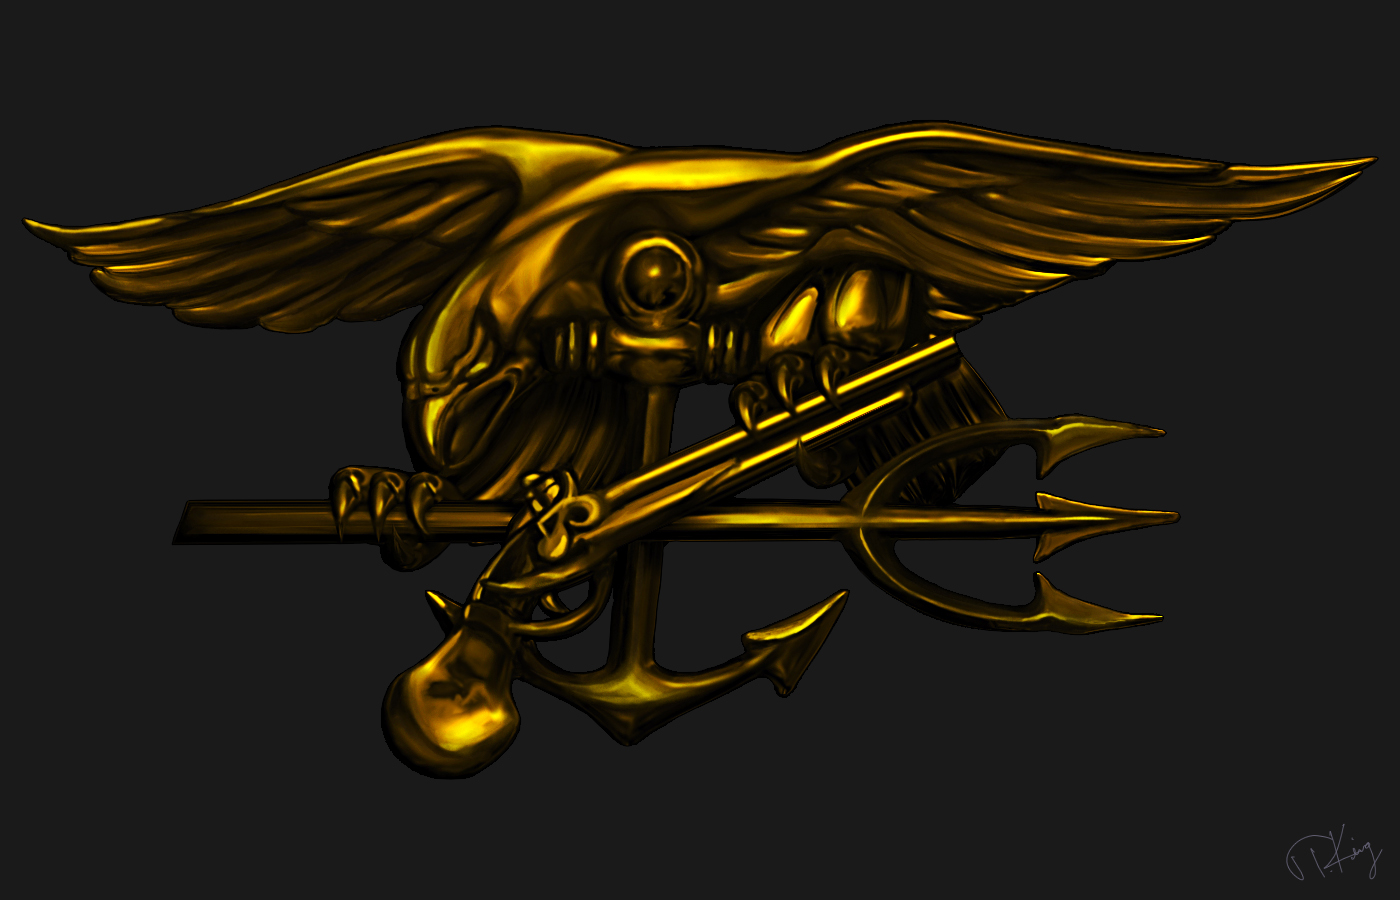 Navy seal trident phone wallpaper